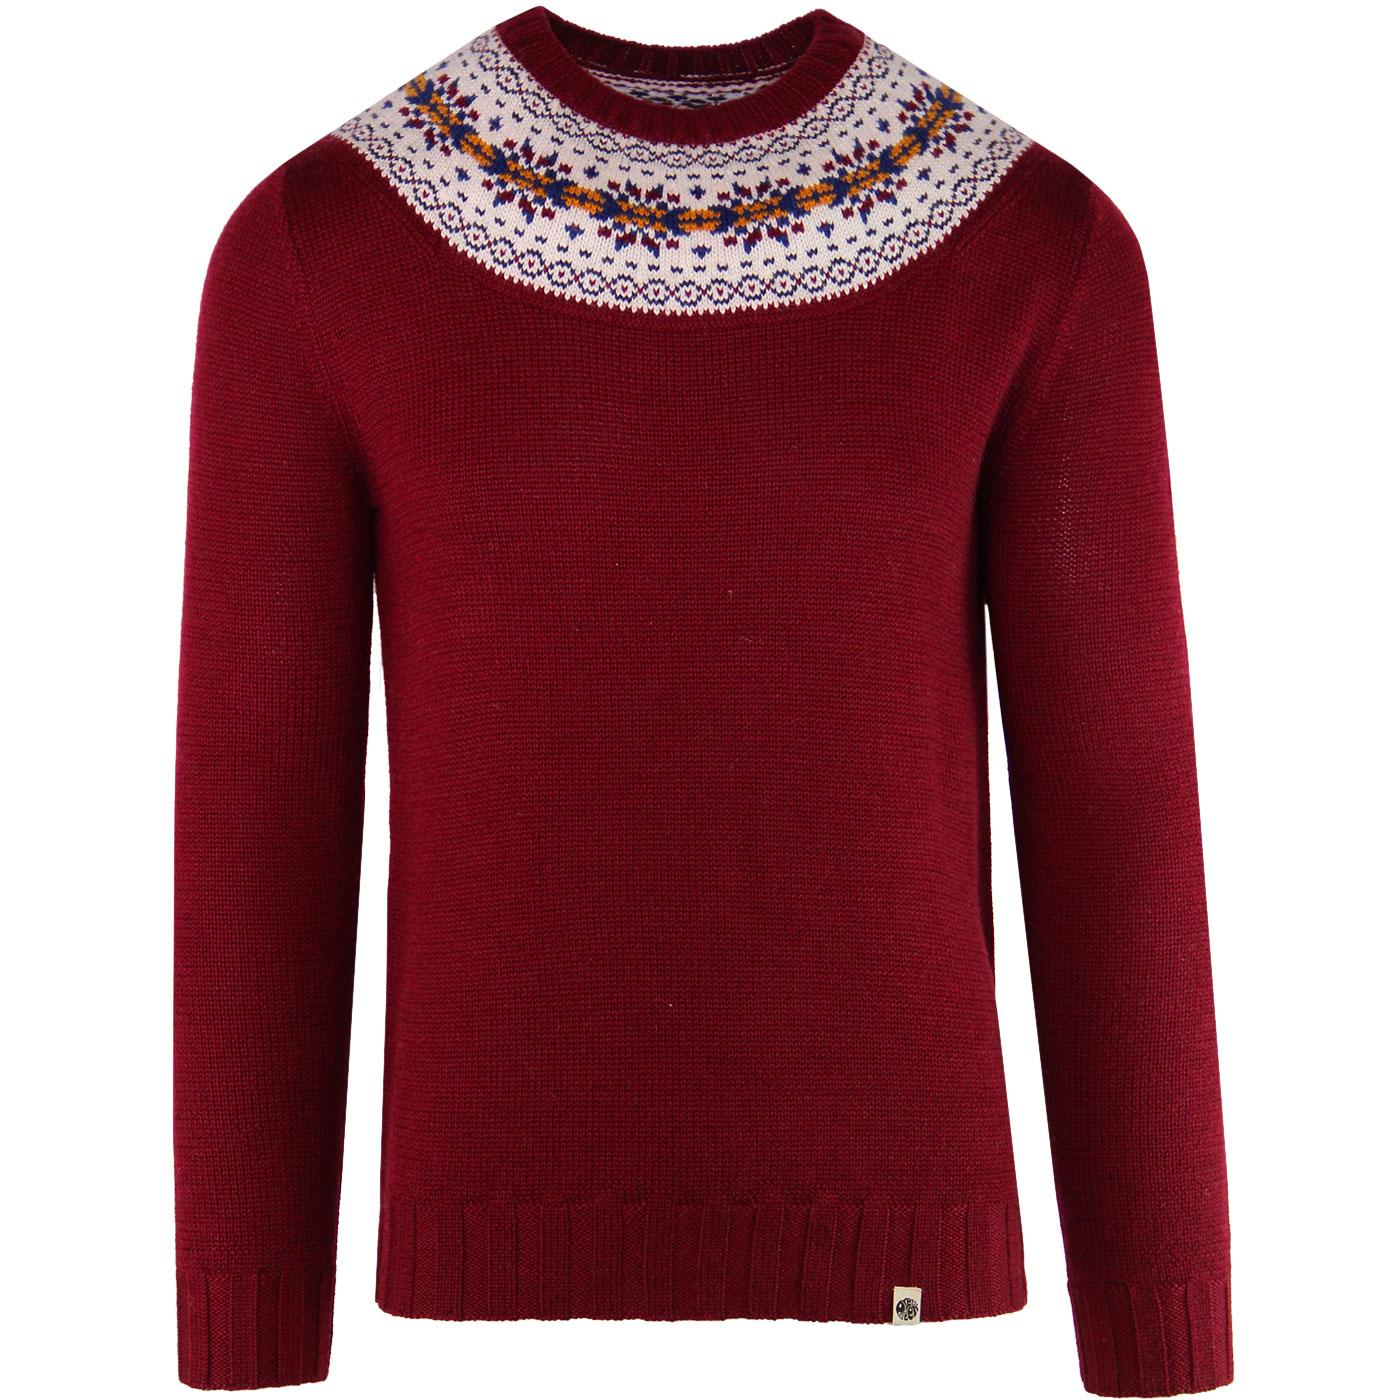 PRETTY GREEN Retro 70's Knitted Fair Isle Jumper